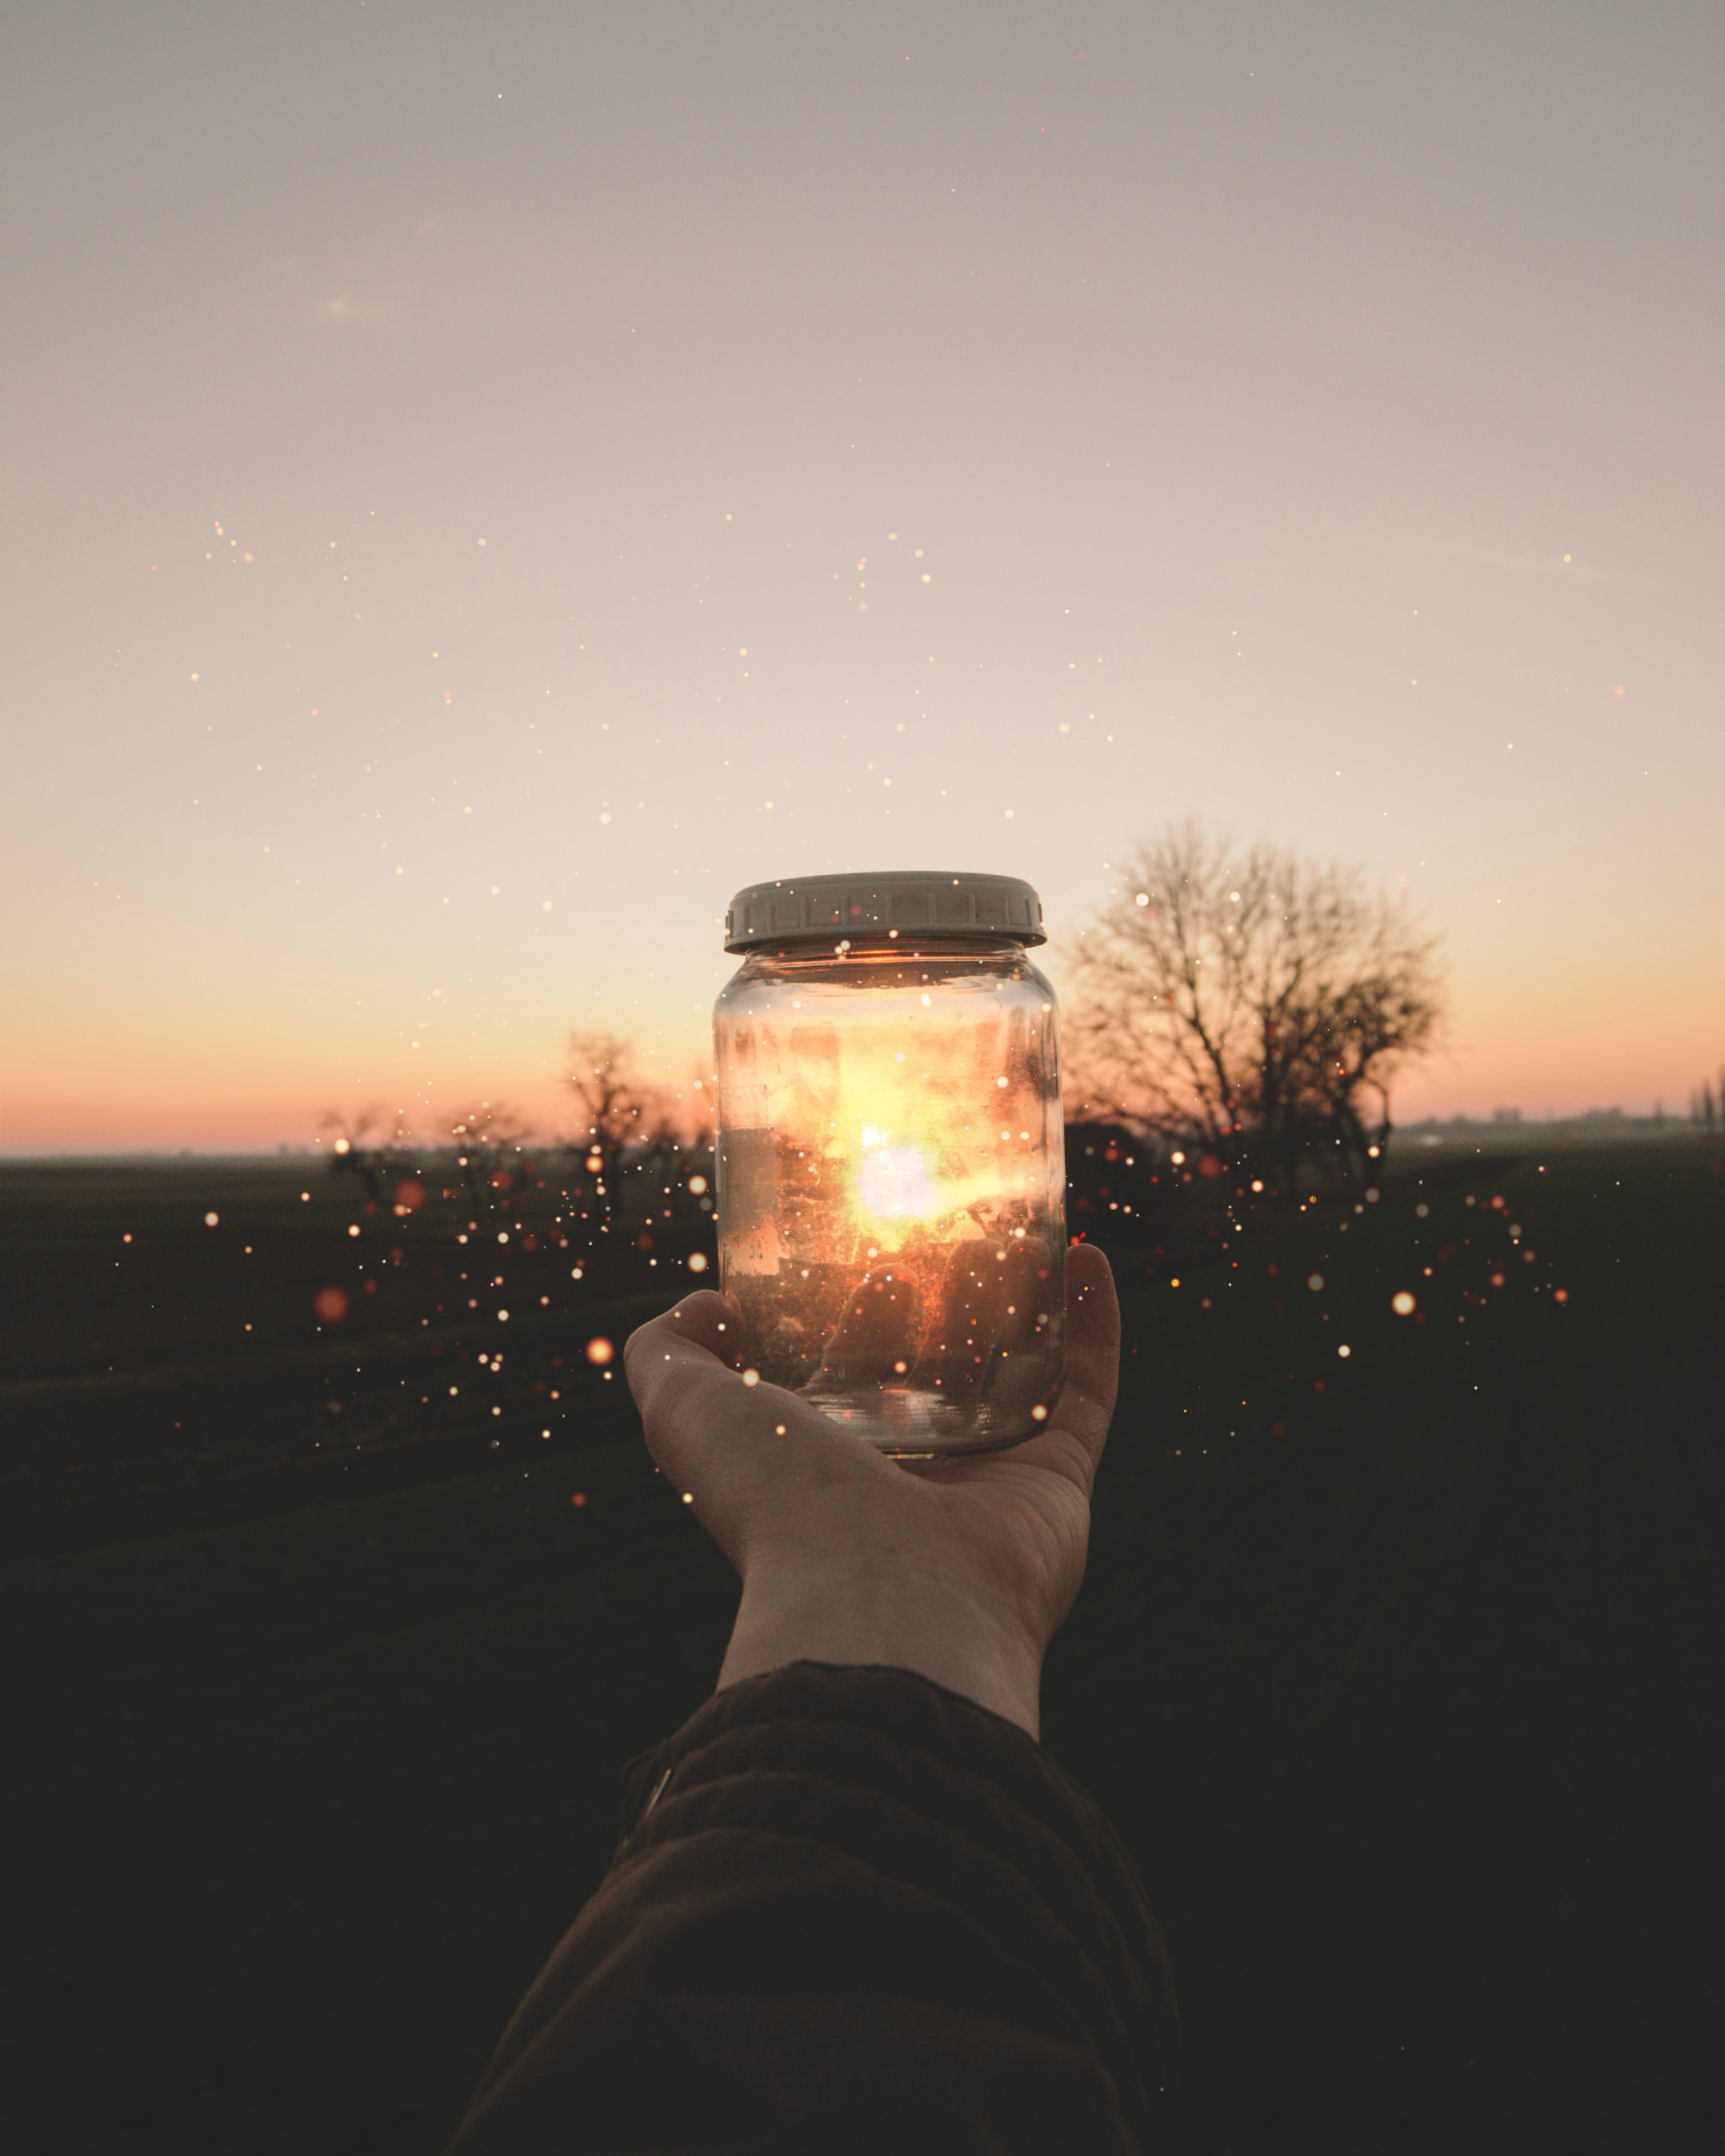 Ain image of a sunset obscured by a glass jar, creating a sparkling light effect.